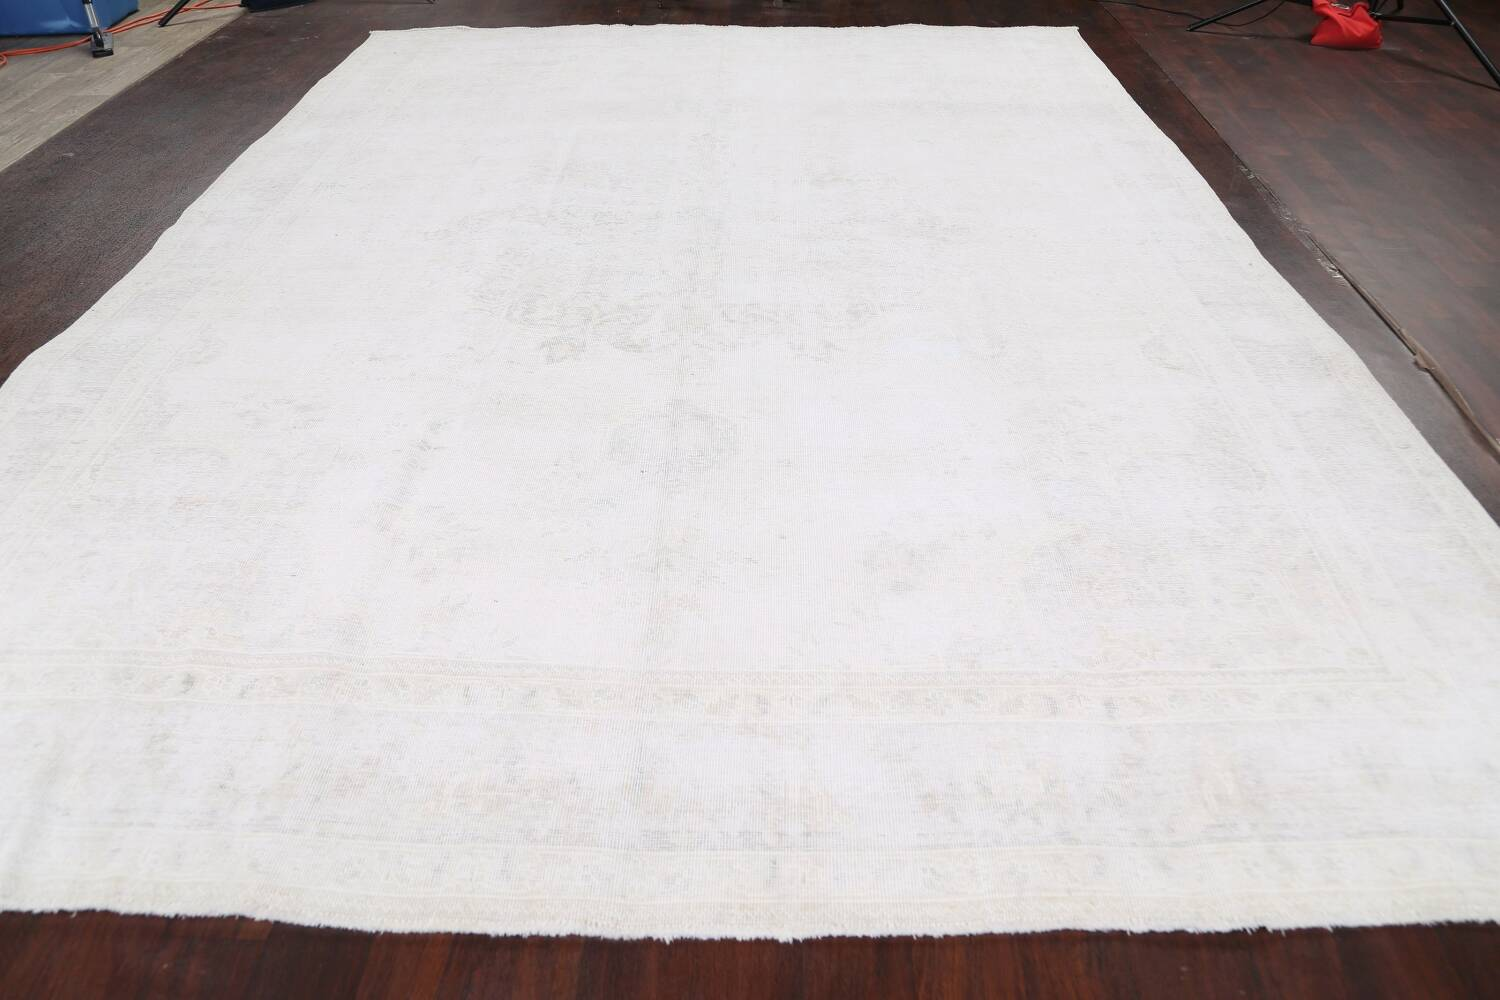 Antique Muted Tabriz Persian Area Rug 9x13 image 14